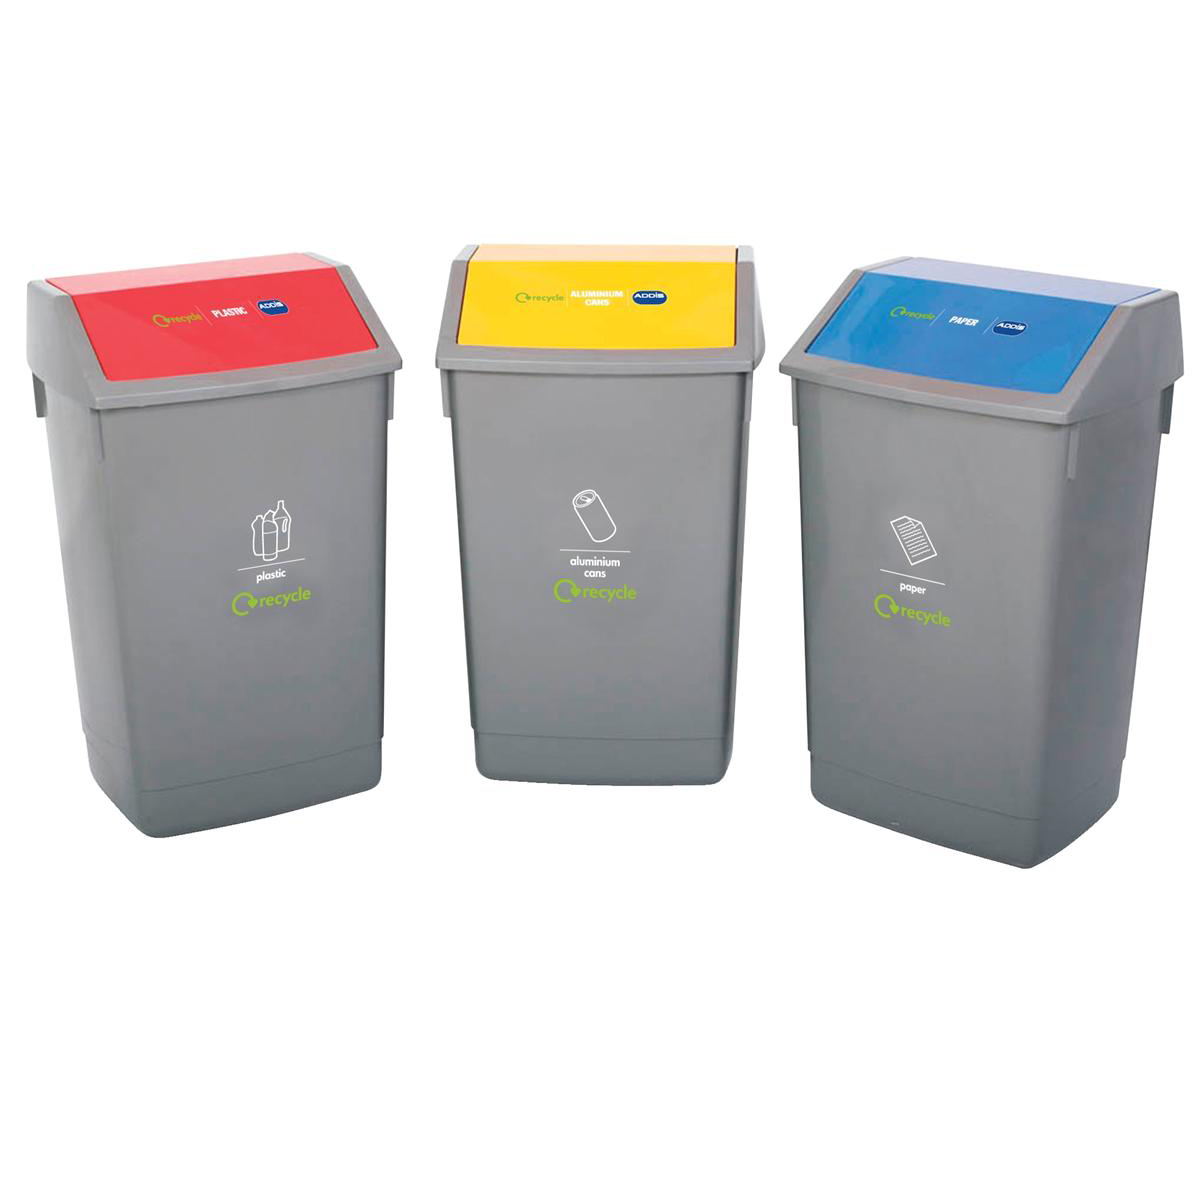 Recycle Bin Kit 3x 60 Litre Bins with Colour Coded Lids Flip Top Ref 505576 [Pack 3]